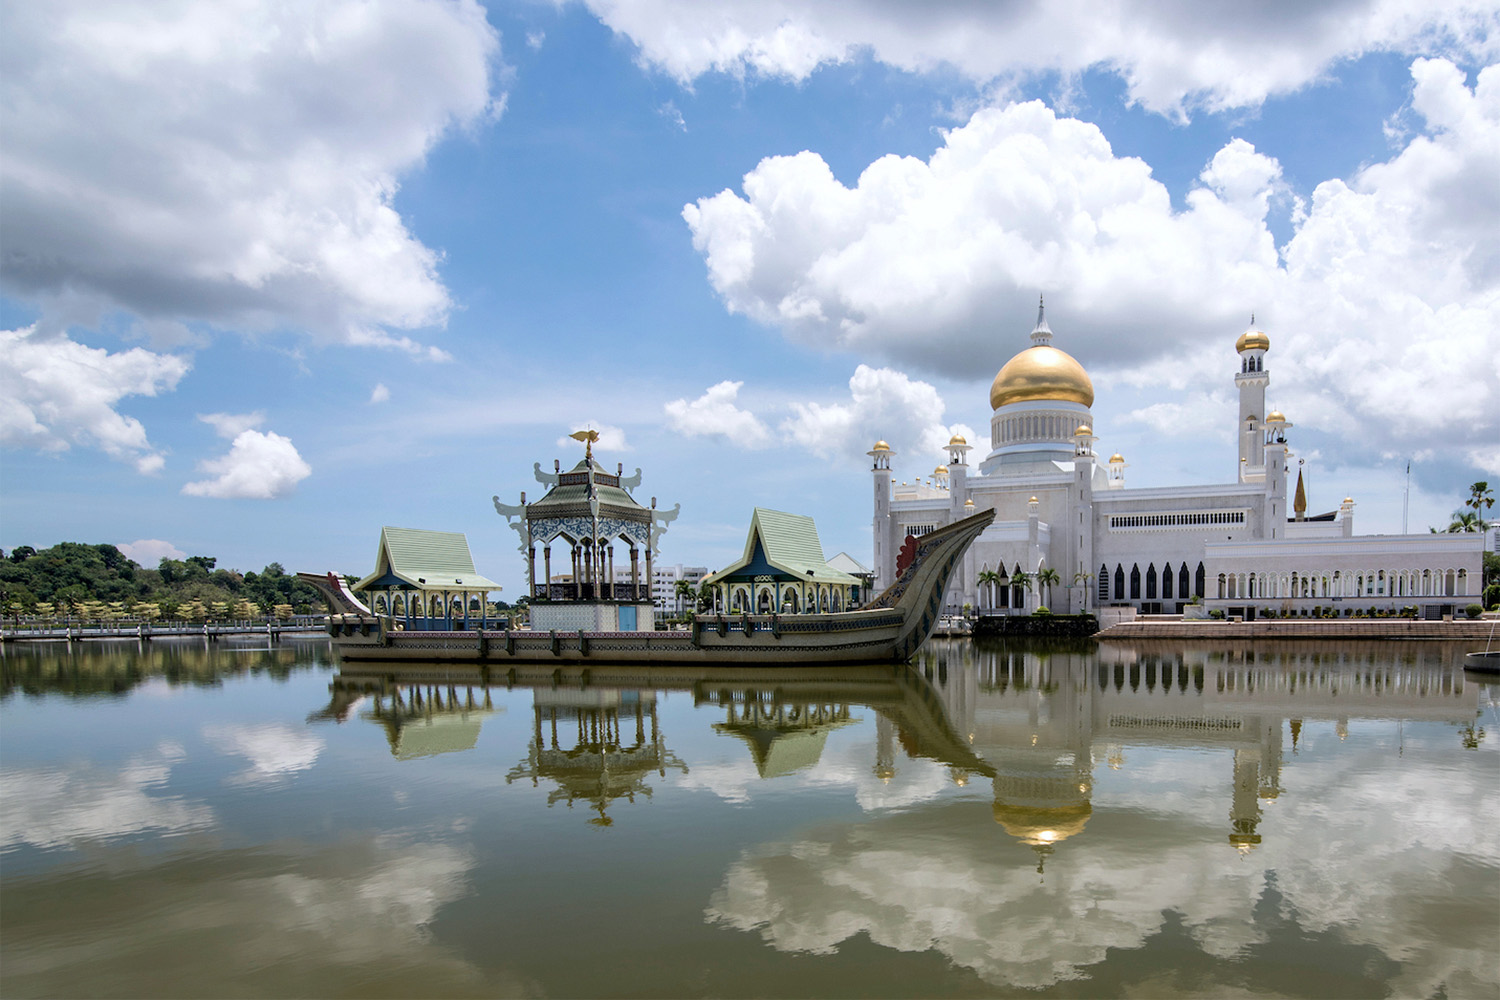 Sultan Ali Omar Saifuddin Mosque in Brunei